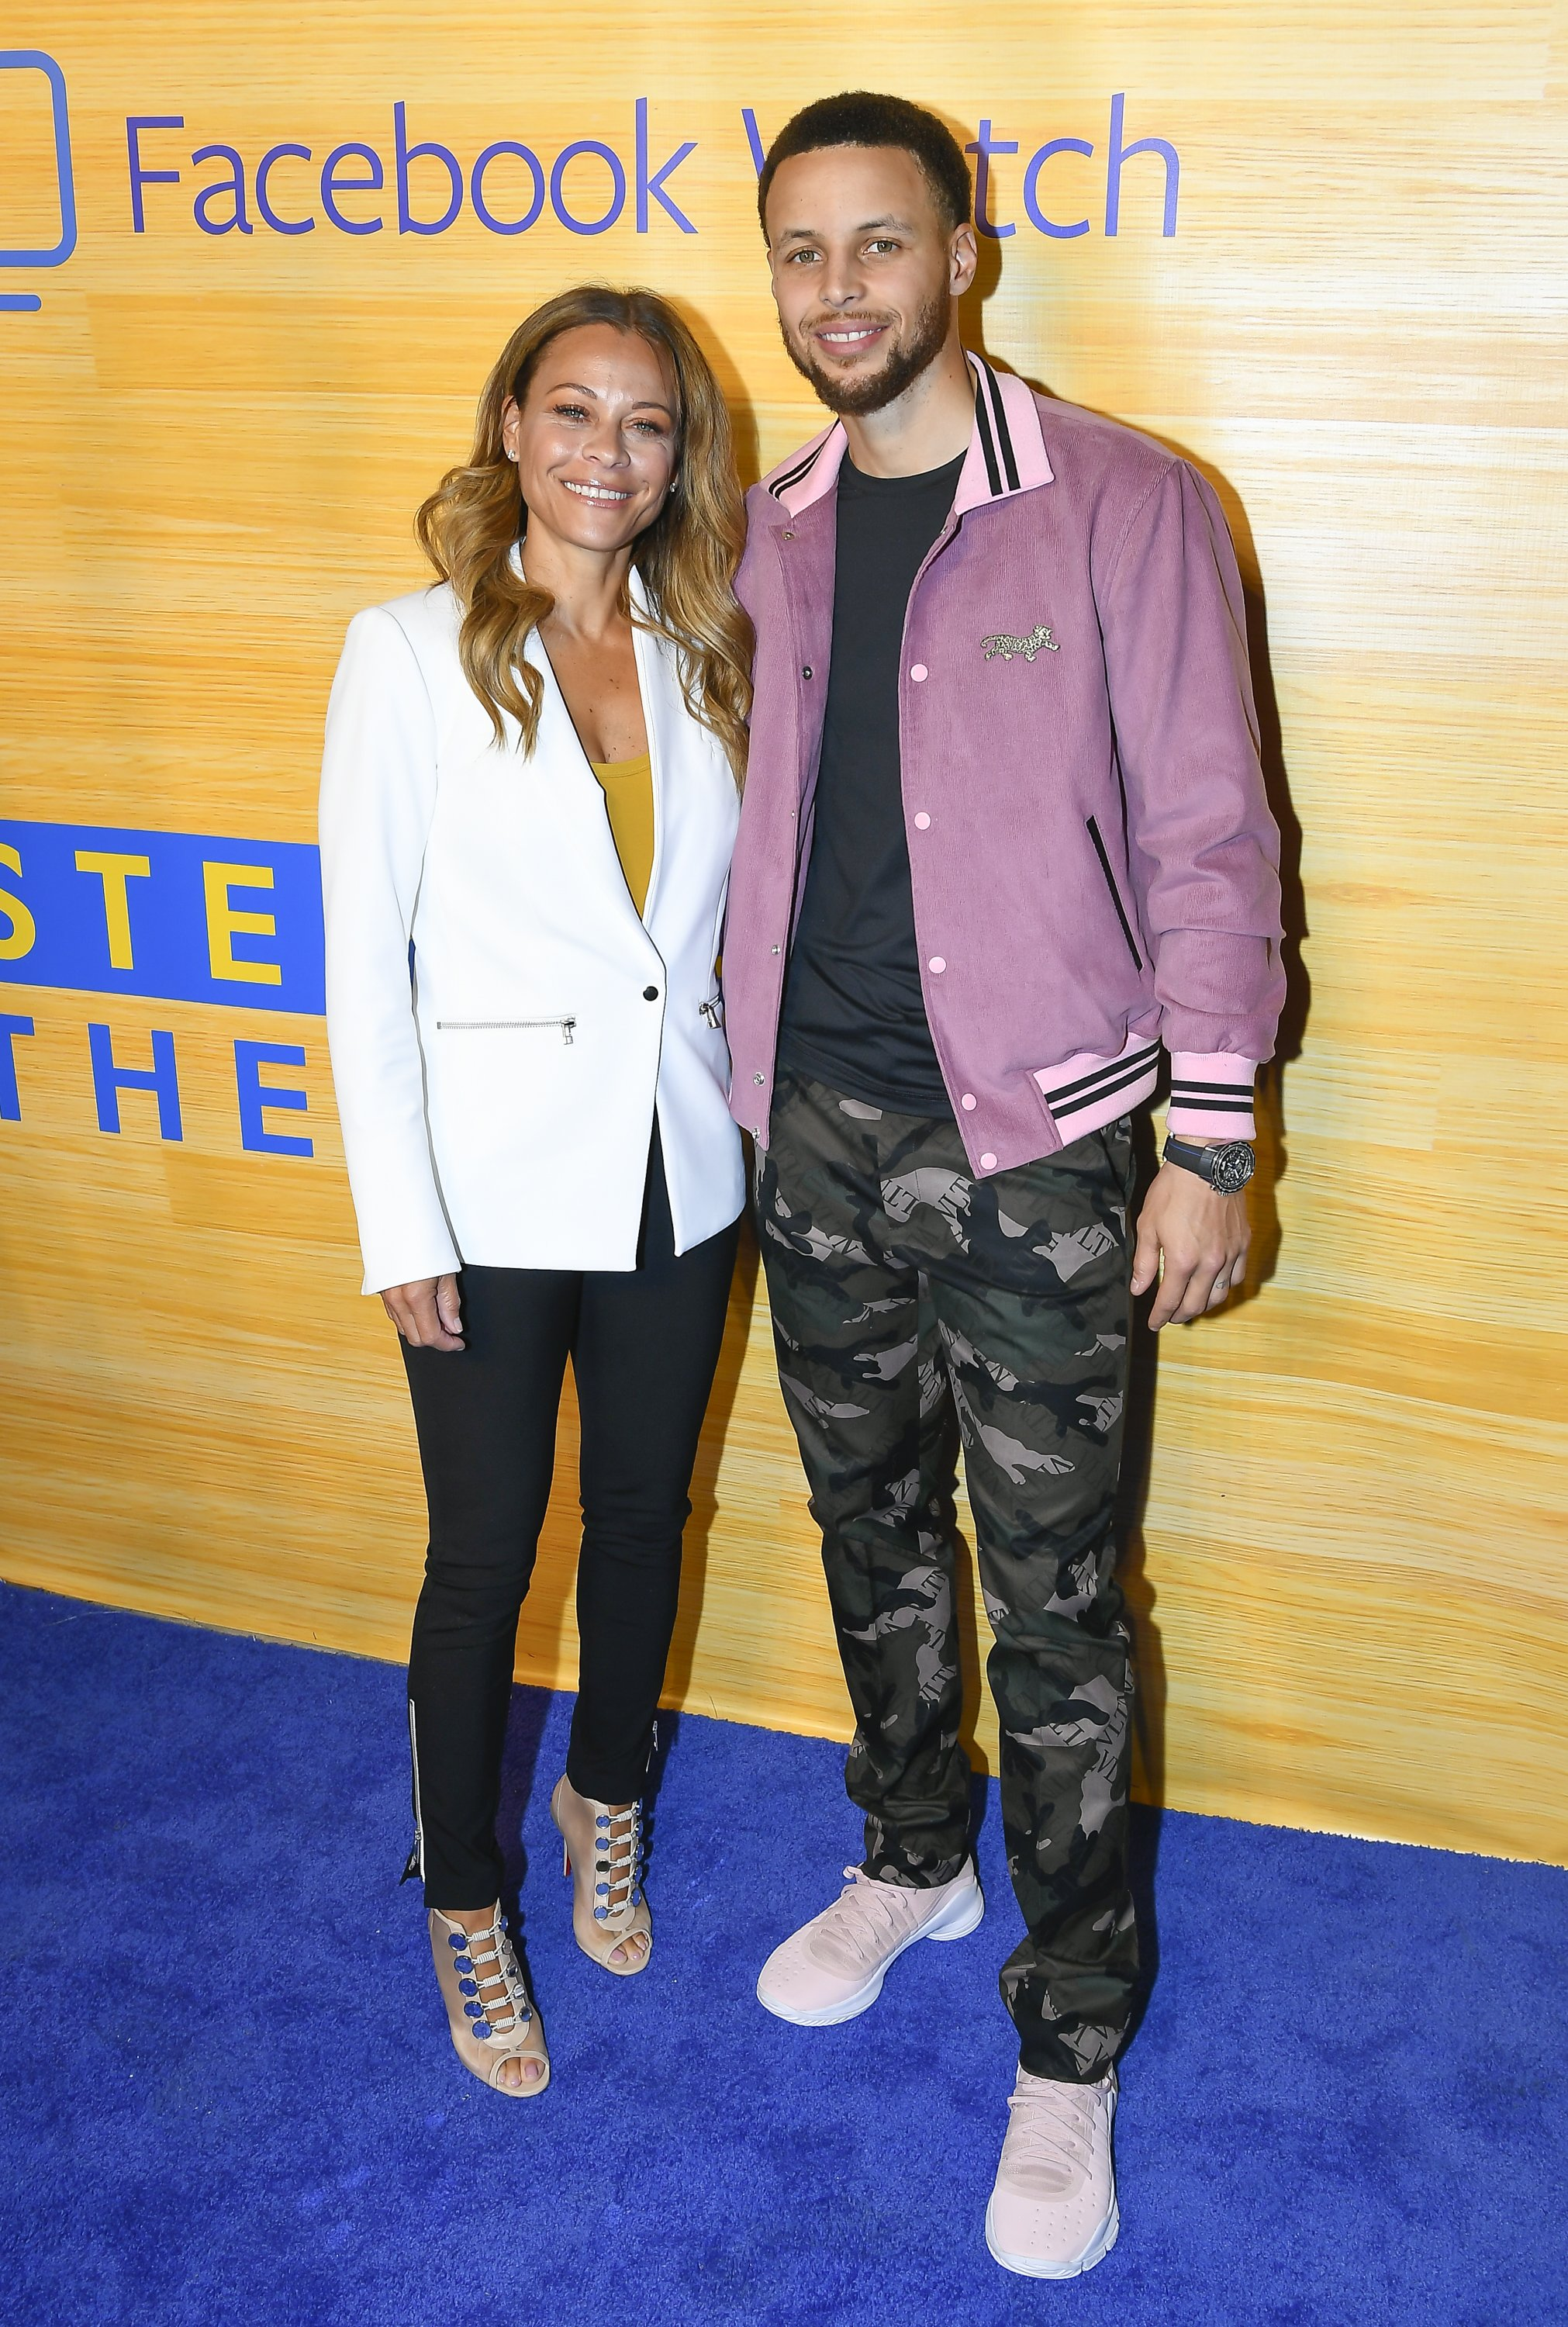 Steph Curry S Mom Sonya Curry Is A Teacher And Great Inspiration To Him